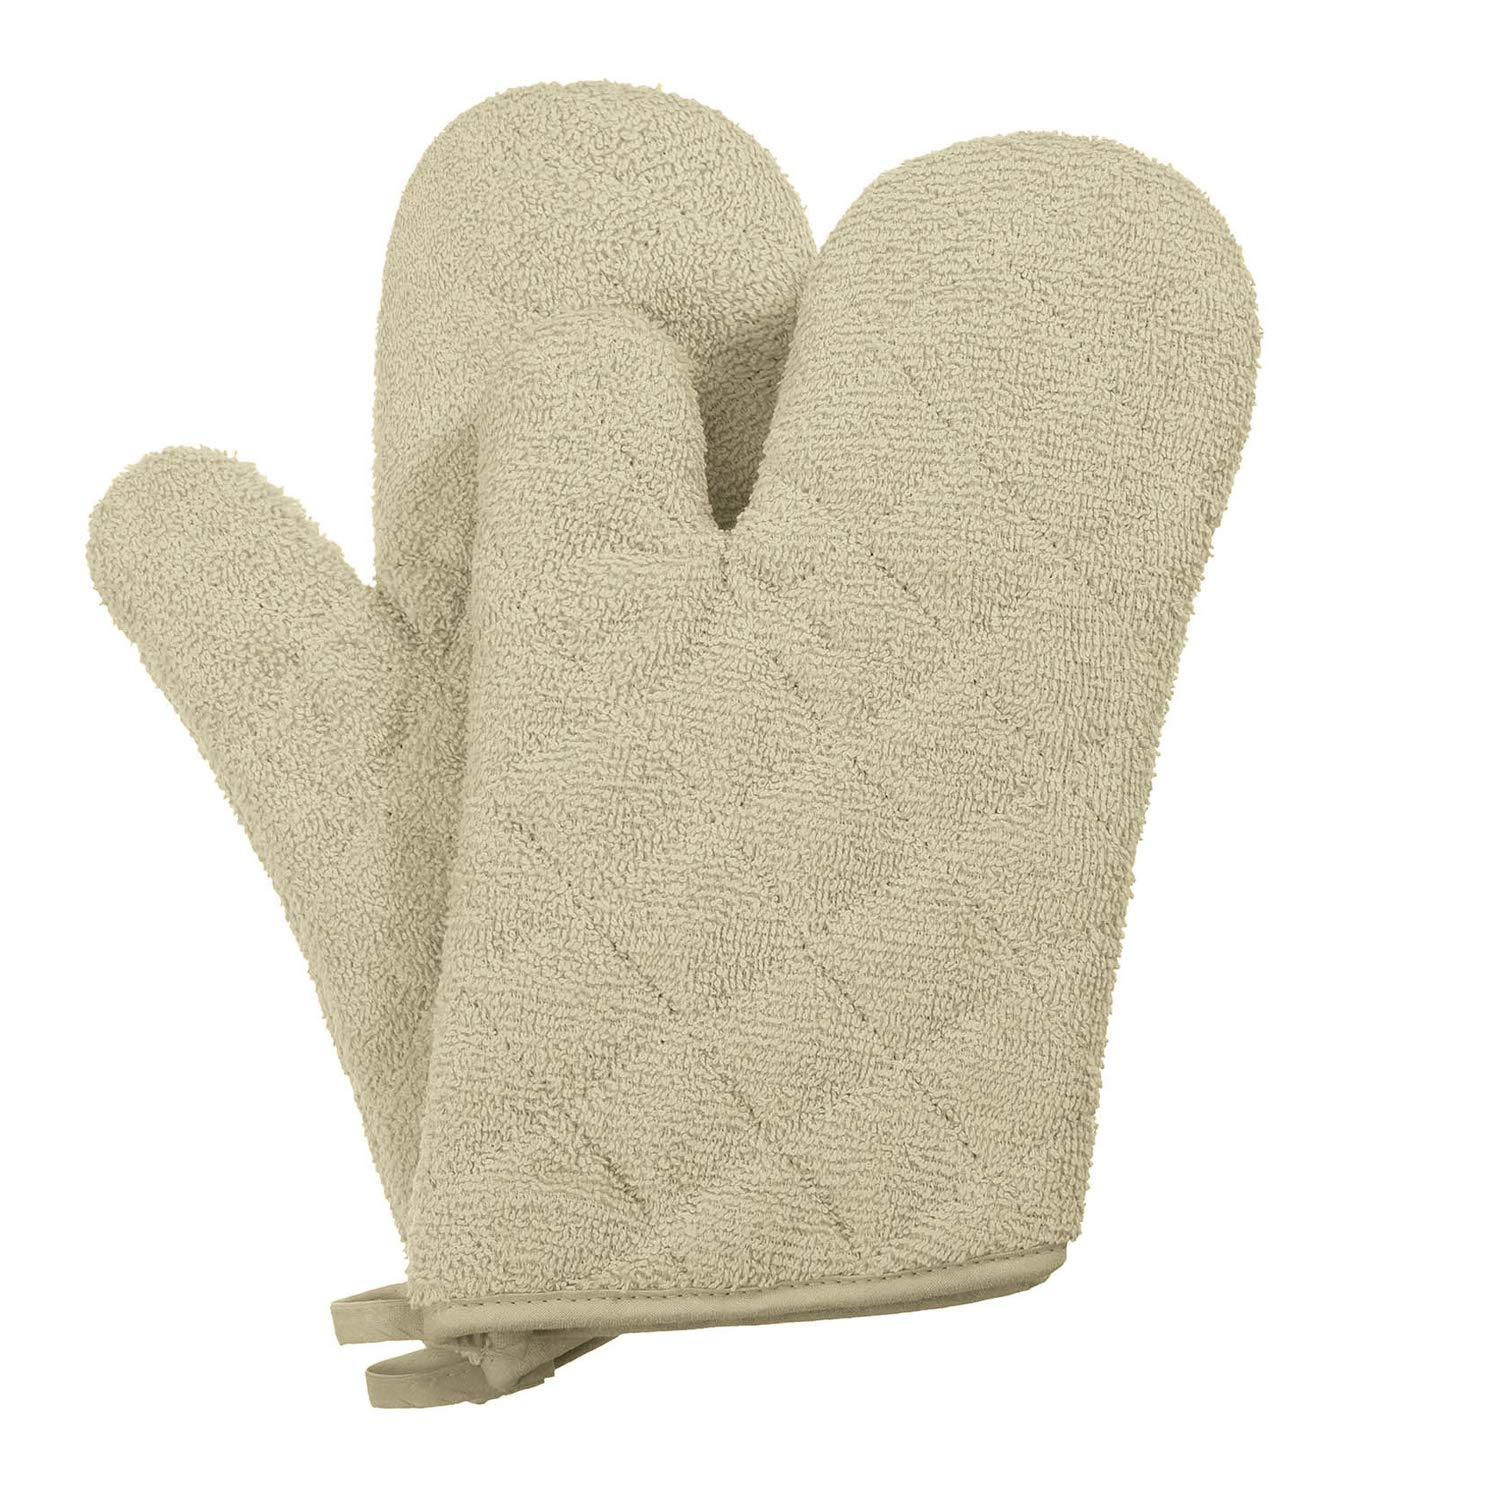 7 x 12 Khaki VEEYOO 100/% Cotton Oven Mitts Terry Heat Resistant Oven Gloves for Kitchen Set of 2